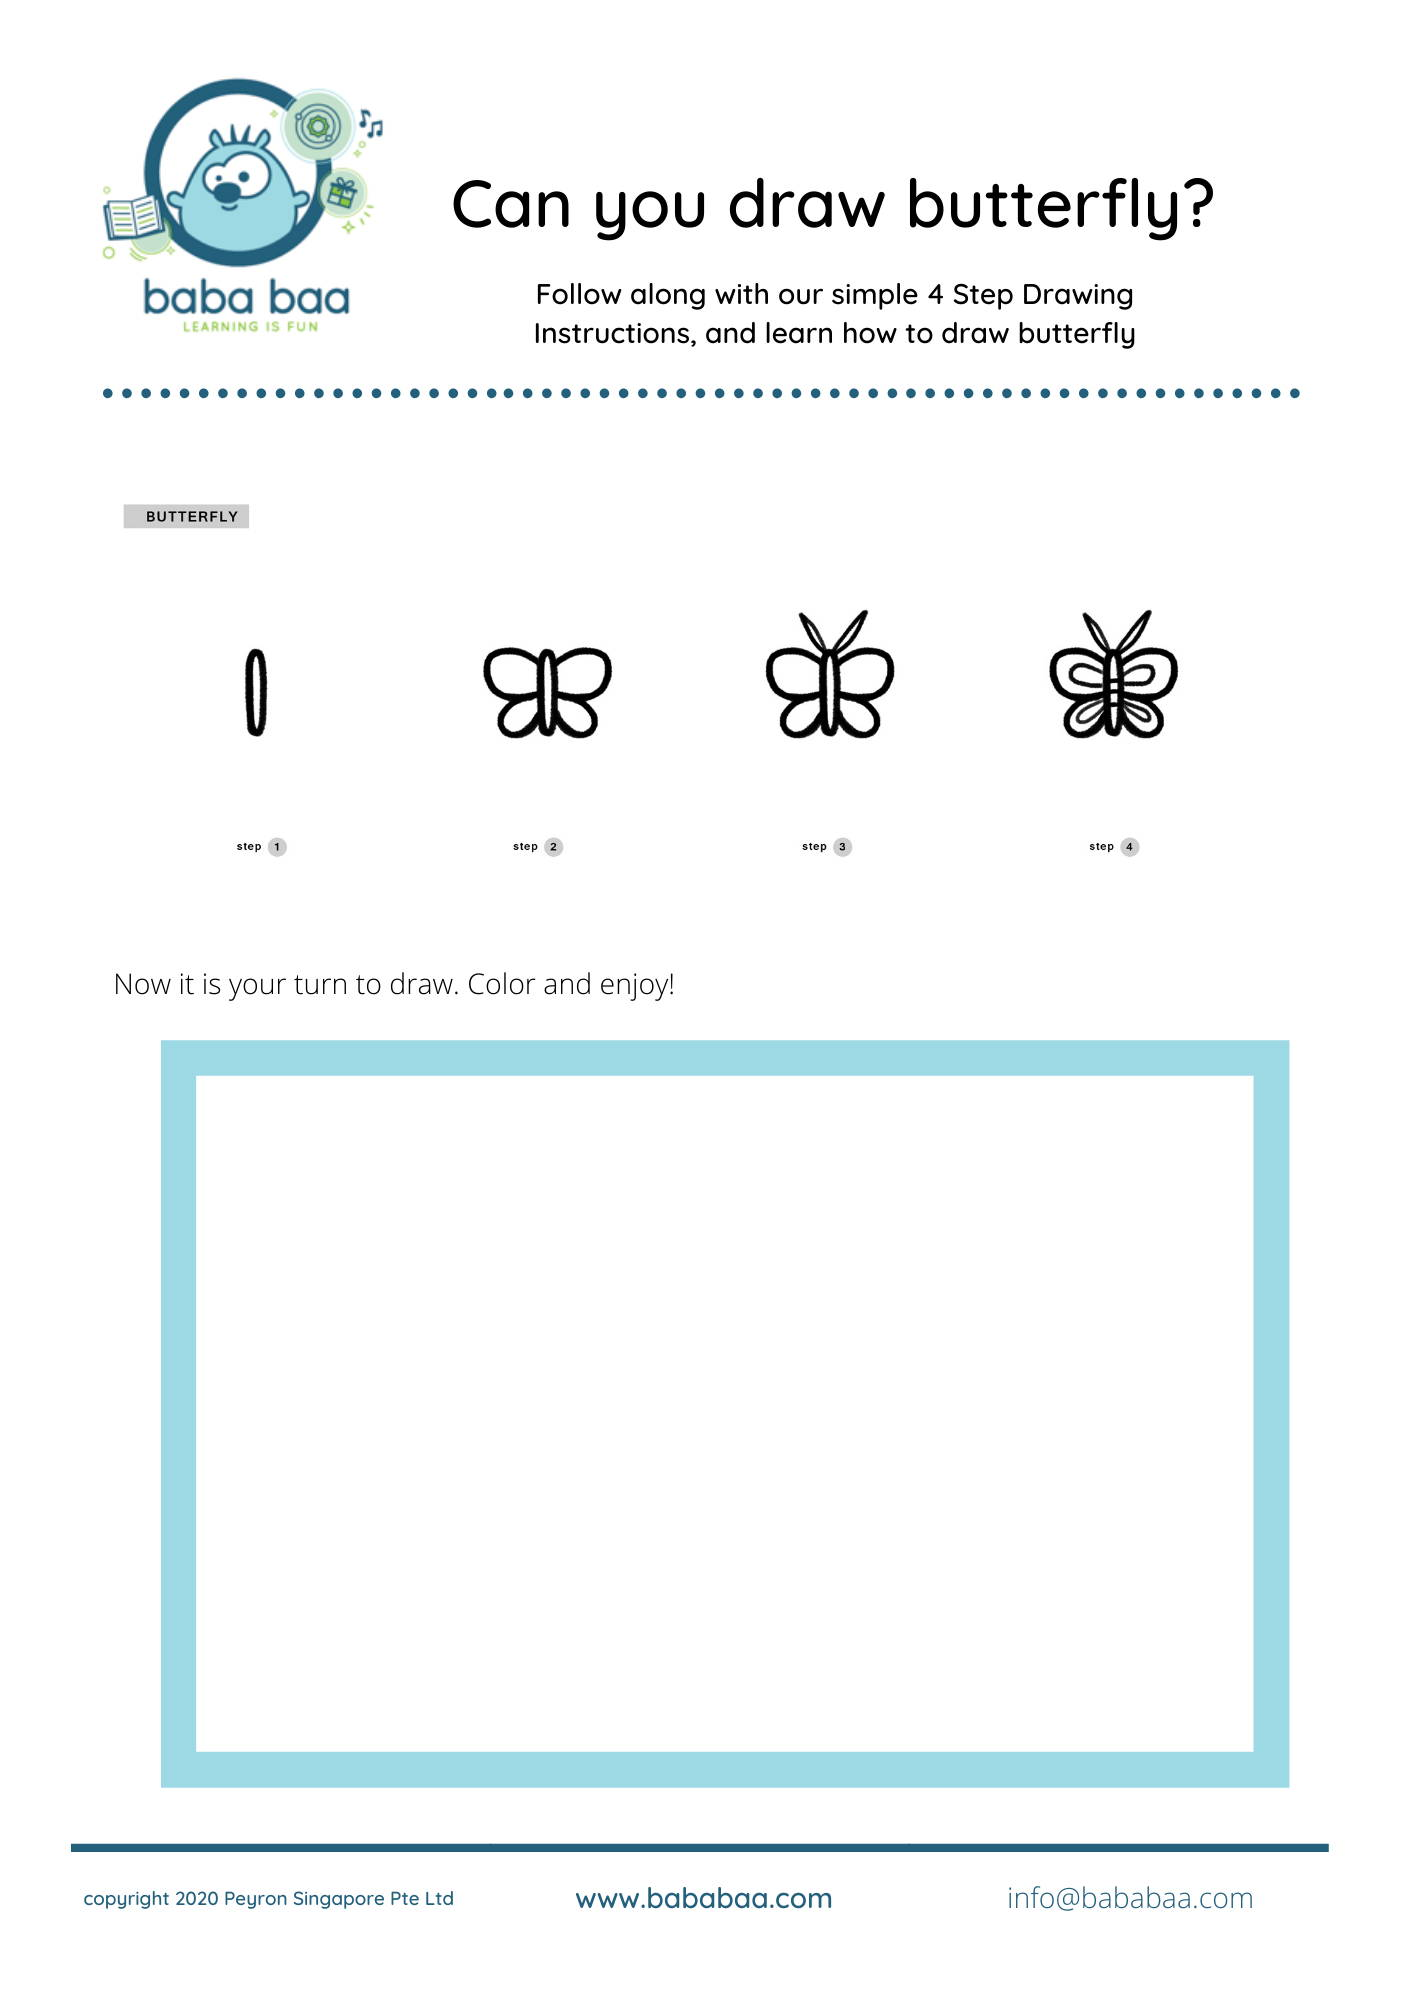 Follow along with our simple step by step drawing instructions, and learn how to draw butterfly.